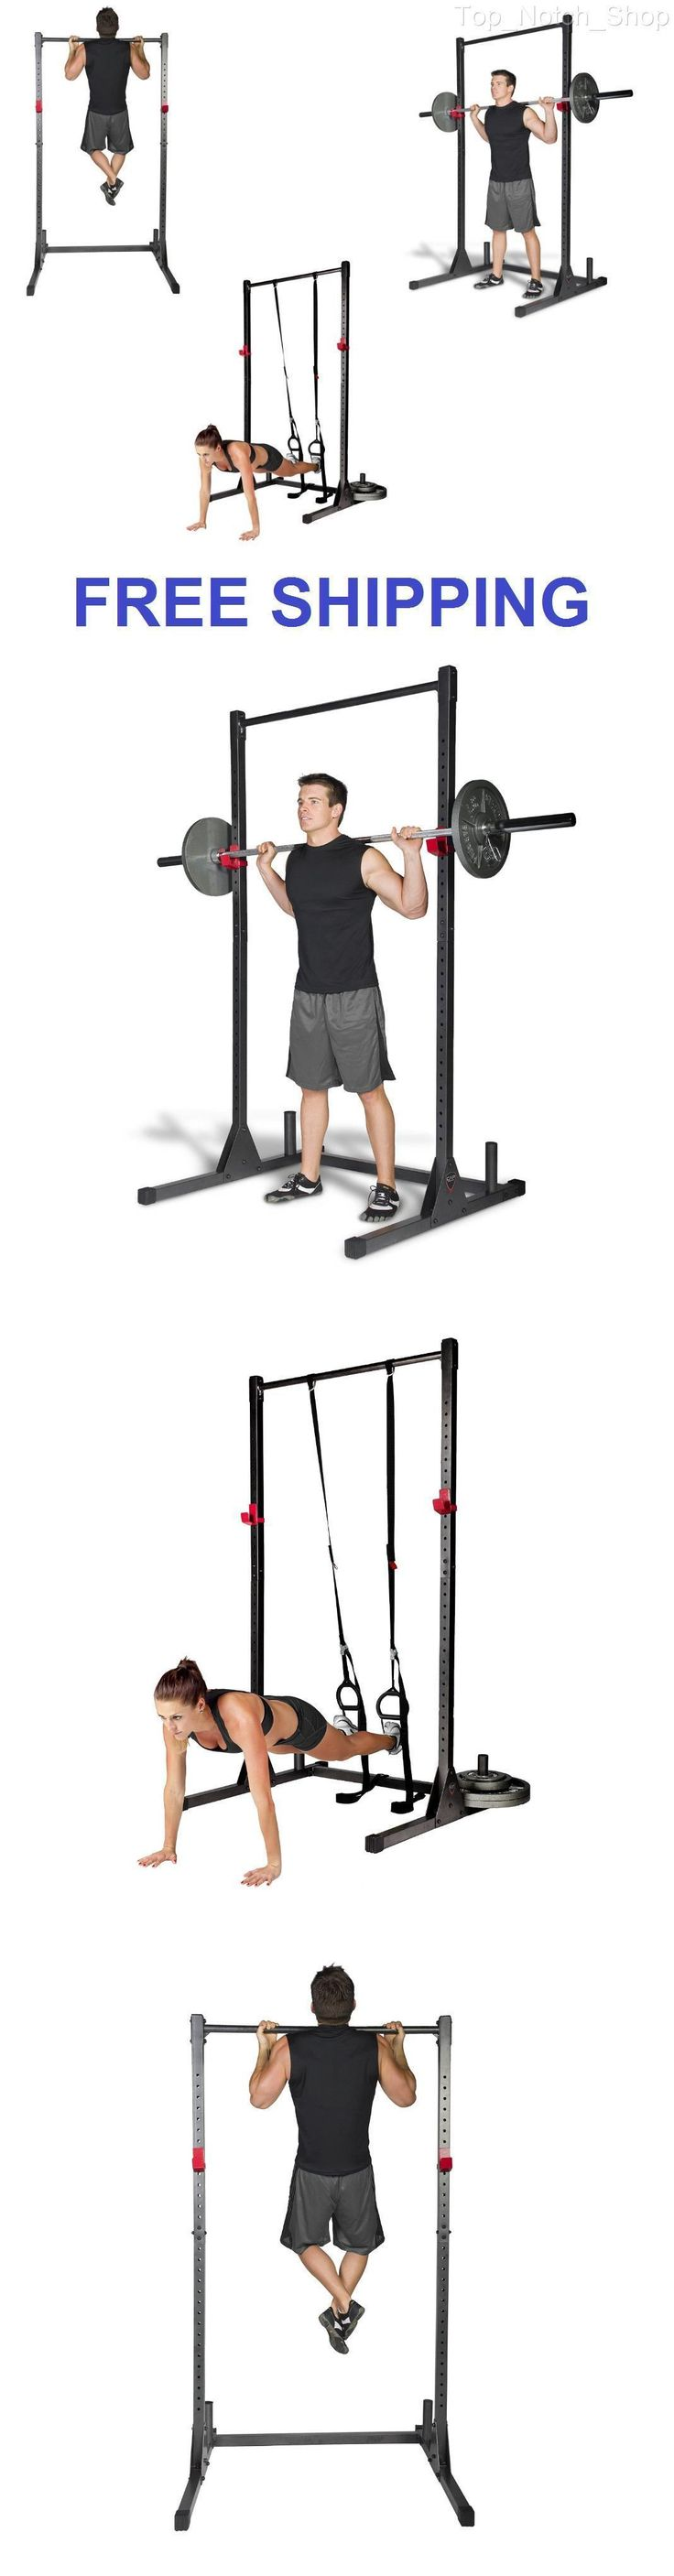 Pull Up Bars 179816: Home Gym Pull Up Bar Power Rack Exercise Stand Body Building Workout Fitness New BUY IT NOW ONLY: $111.99